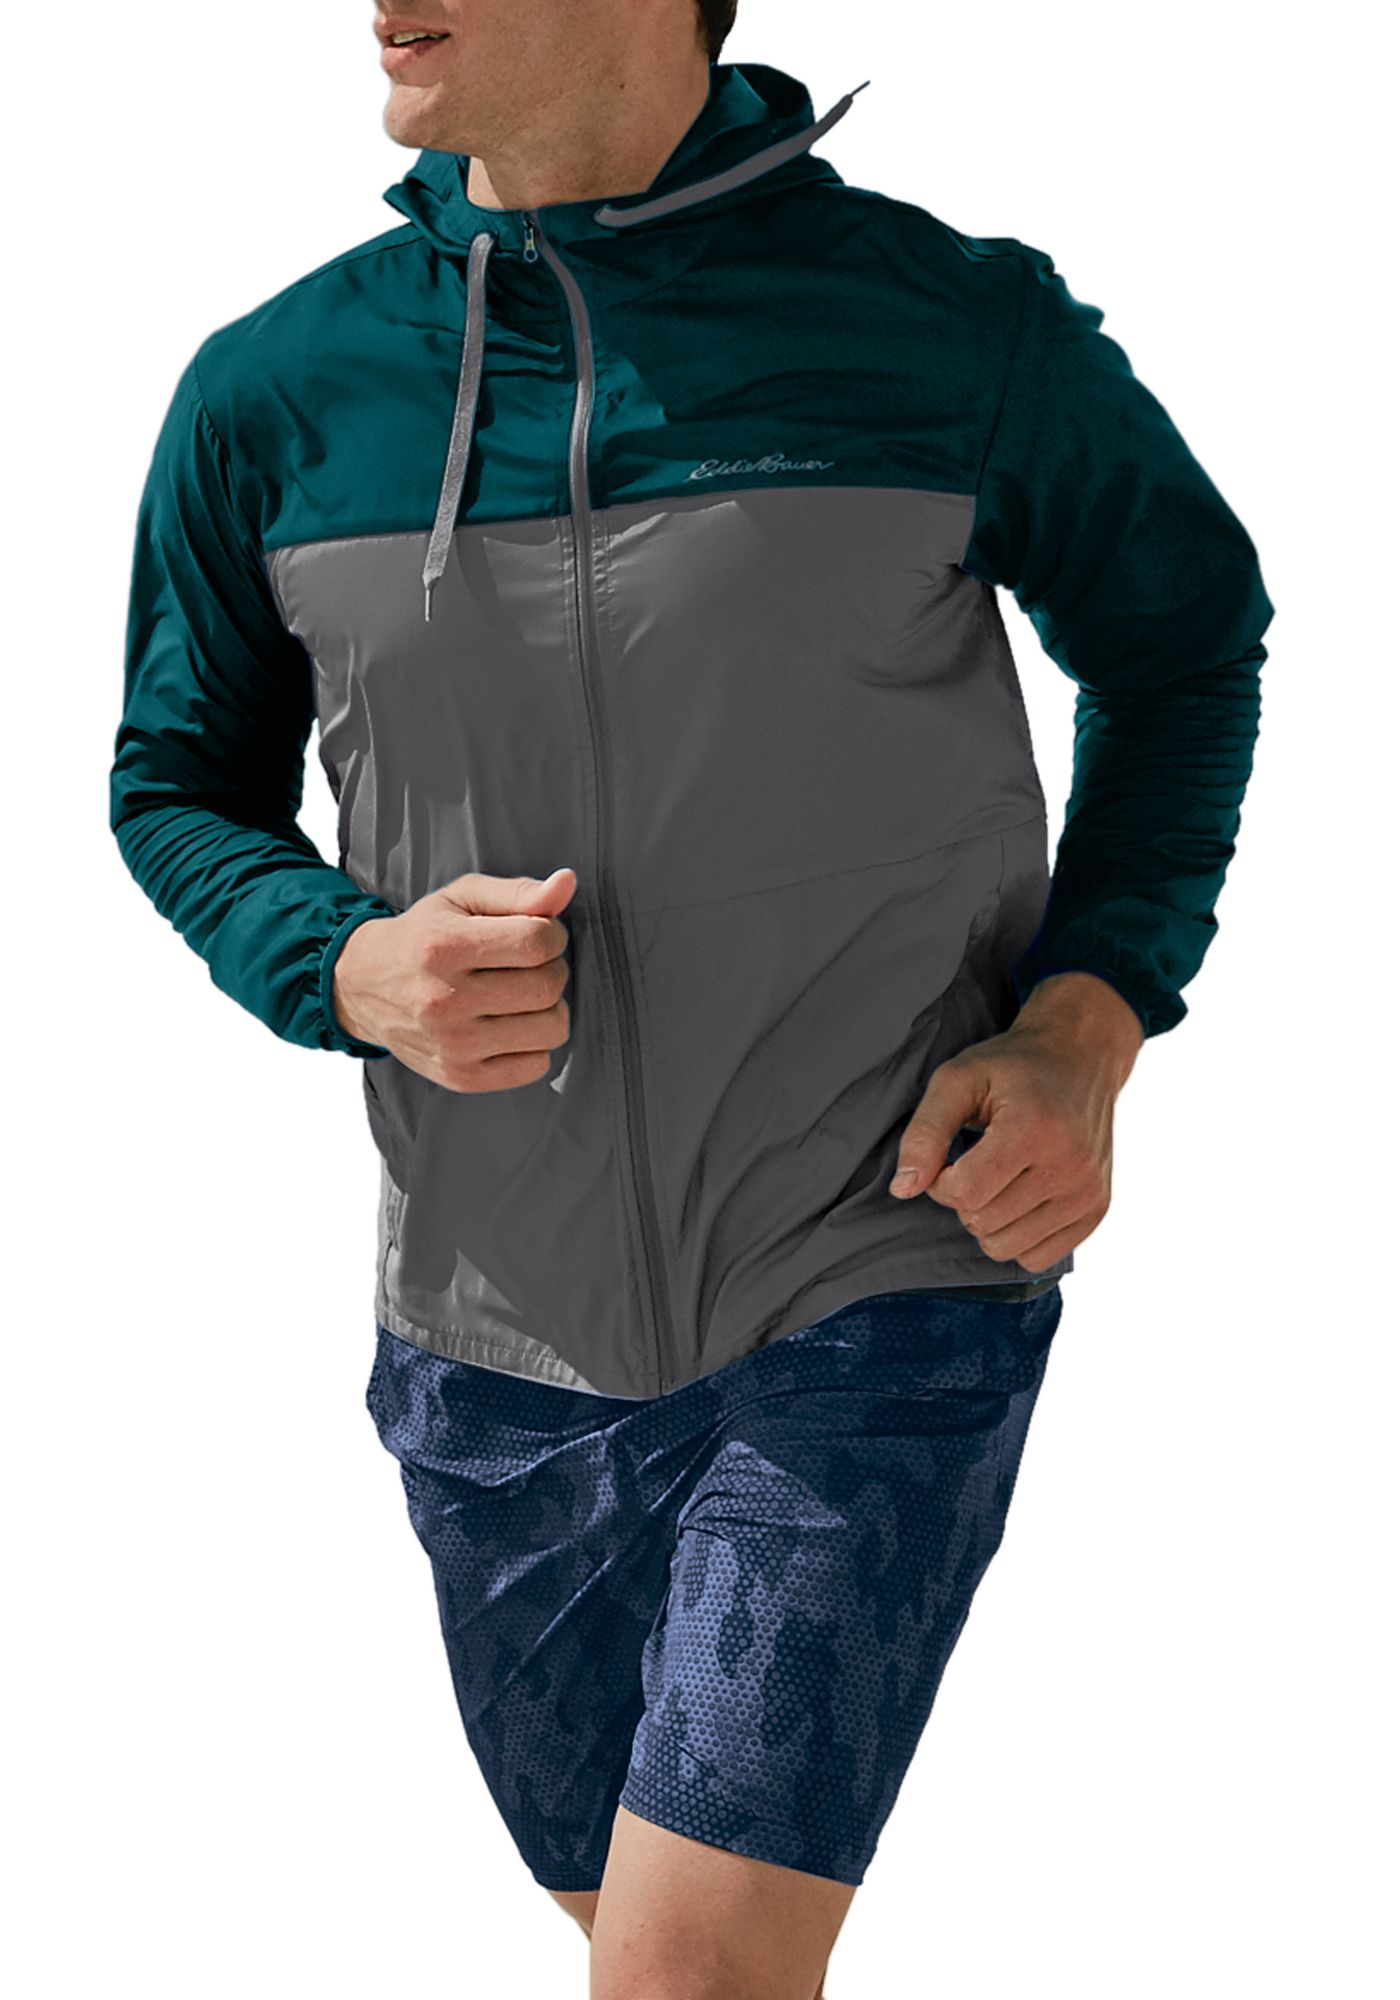 eddie bauer 41 reviews of eddie bauer warehouse store cheap for the quality what else the best customer service ever savage sales on friday and saturday.